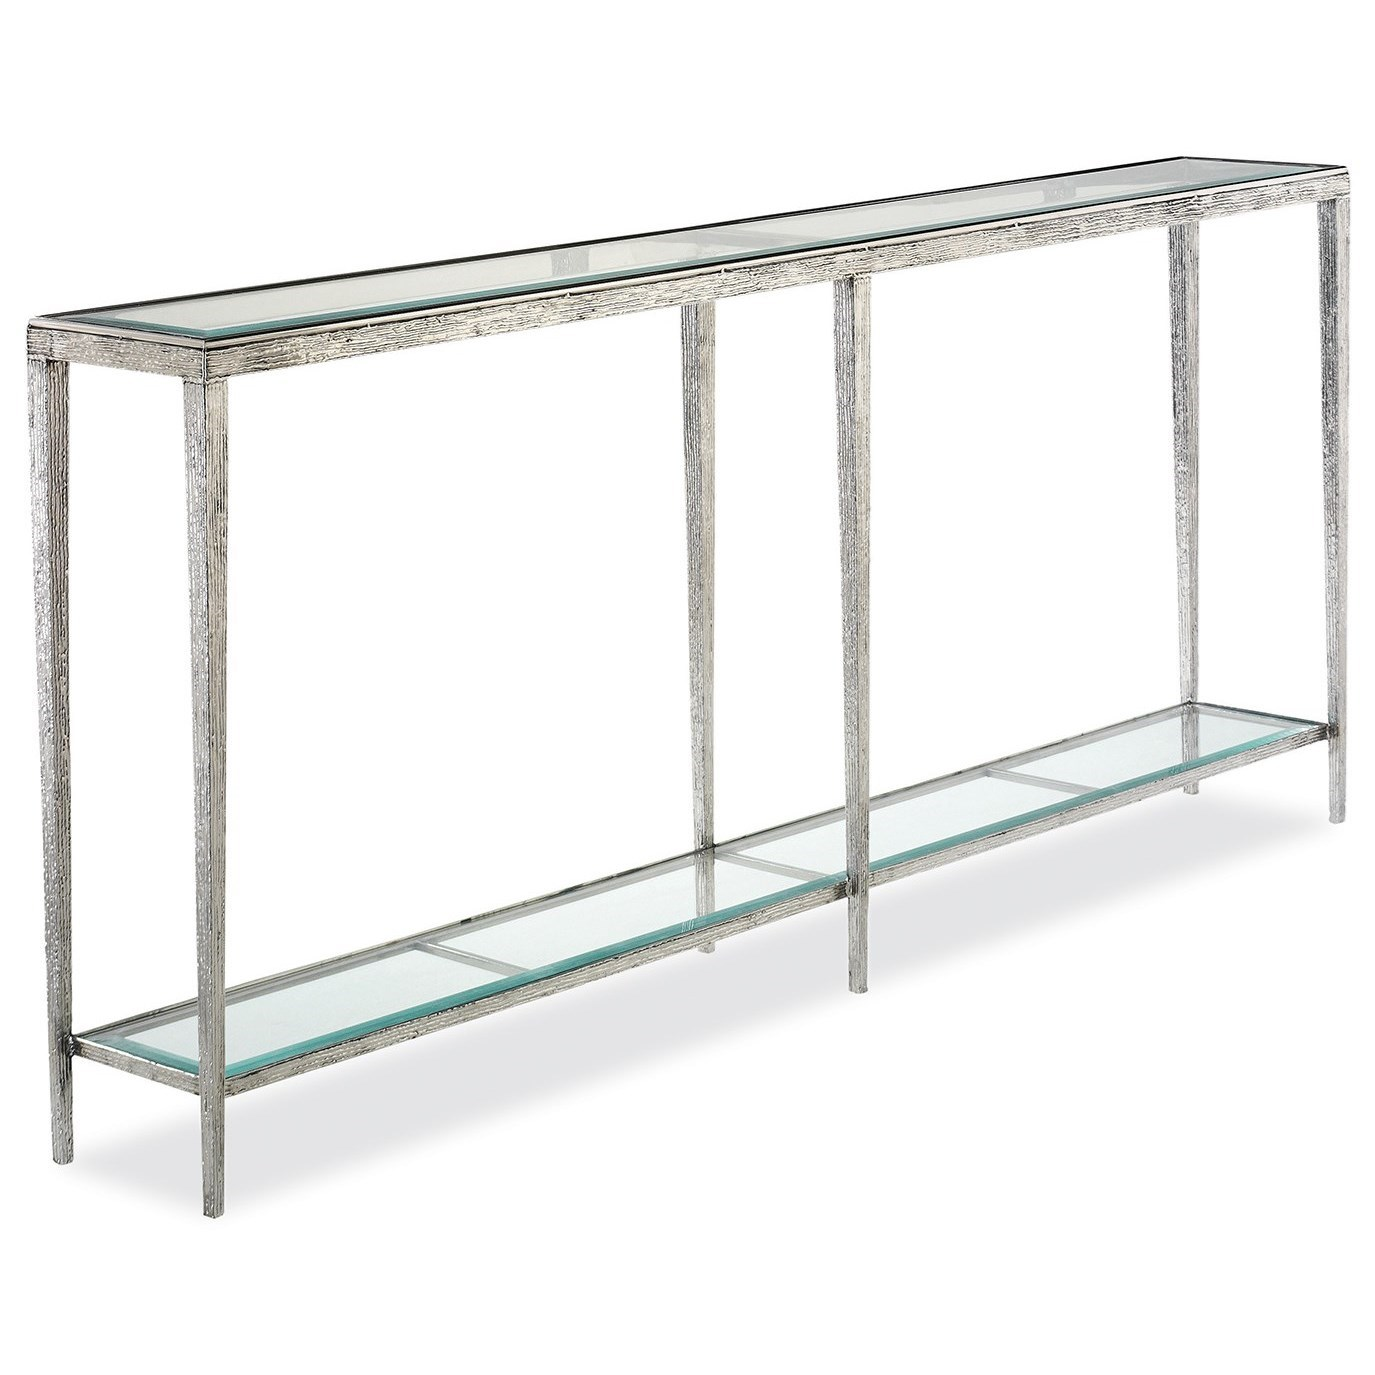 H & M Occasional Jinx Large Nickel Console Table by Hancock & Moore at Baer's Furniture